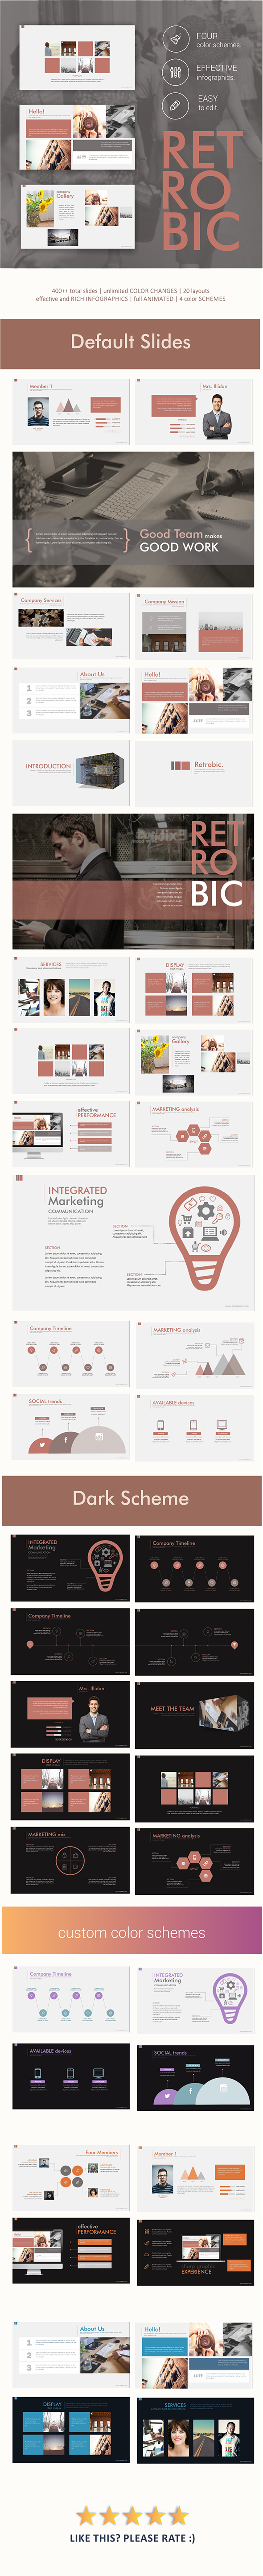 Retrobic PowerPoint Template - Business PowerPoint Templates